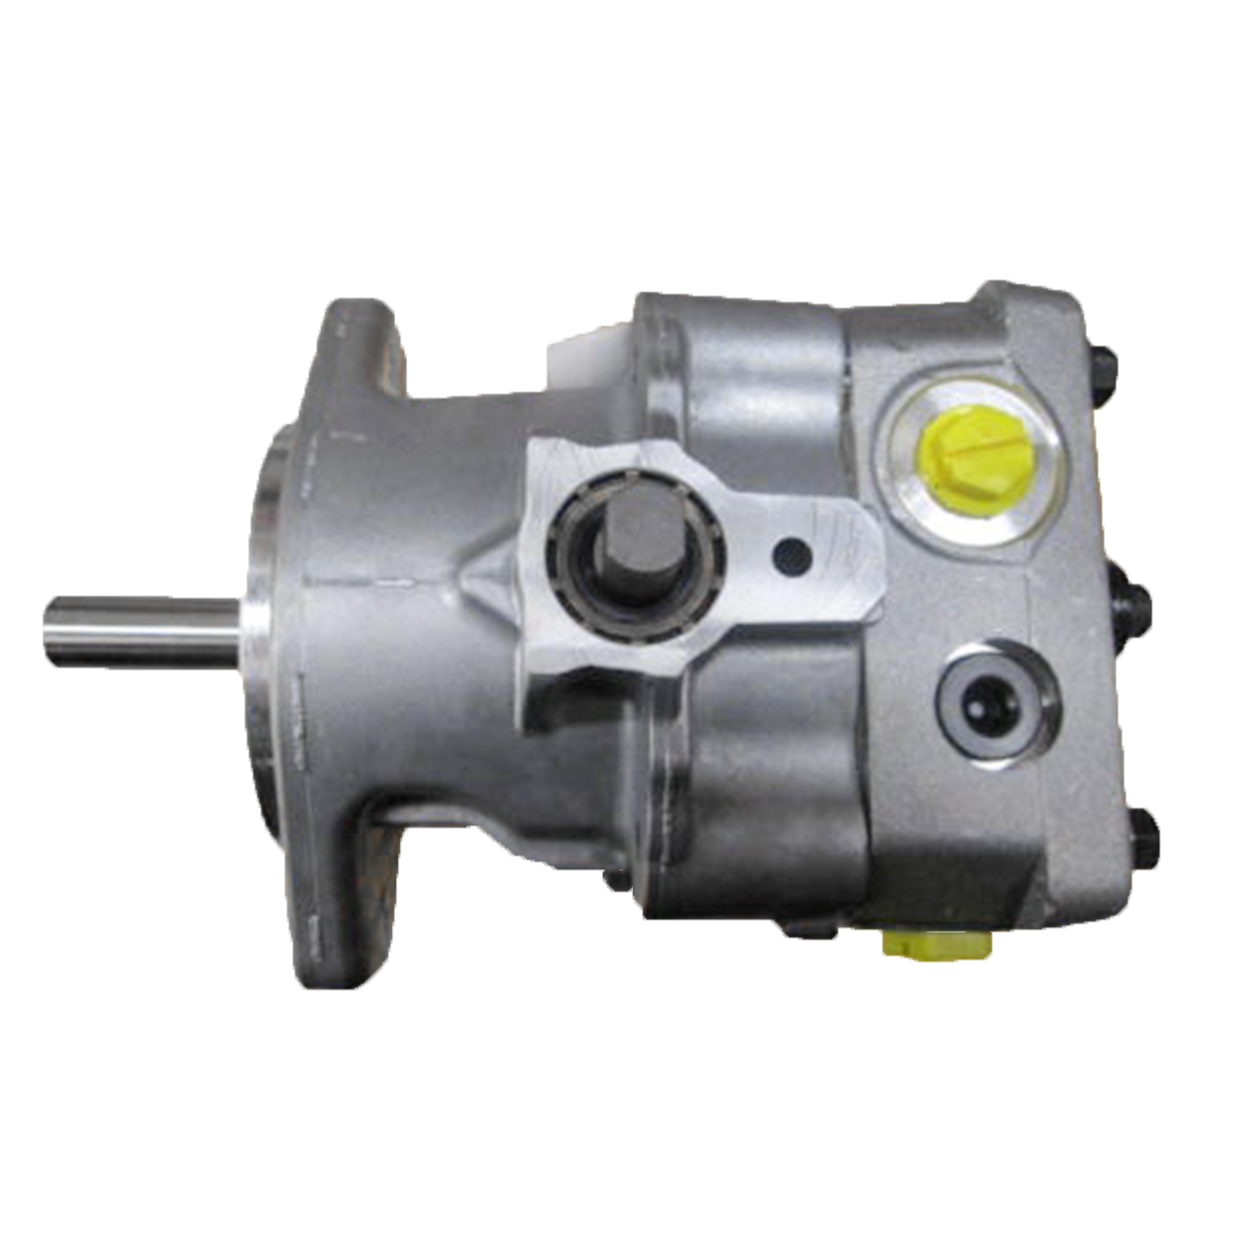 Hydro-Gear Pump 10cc (Right) Exmark, Toro 116-2495, PE-1JQQ-DY1X-XXXX